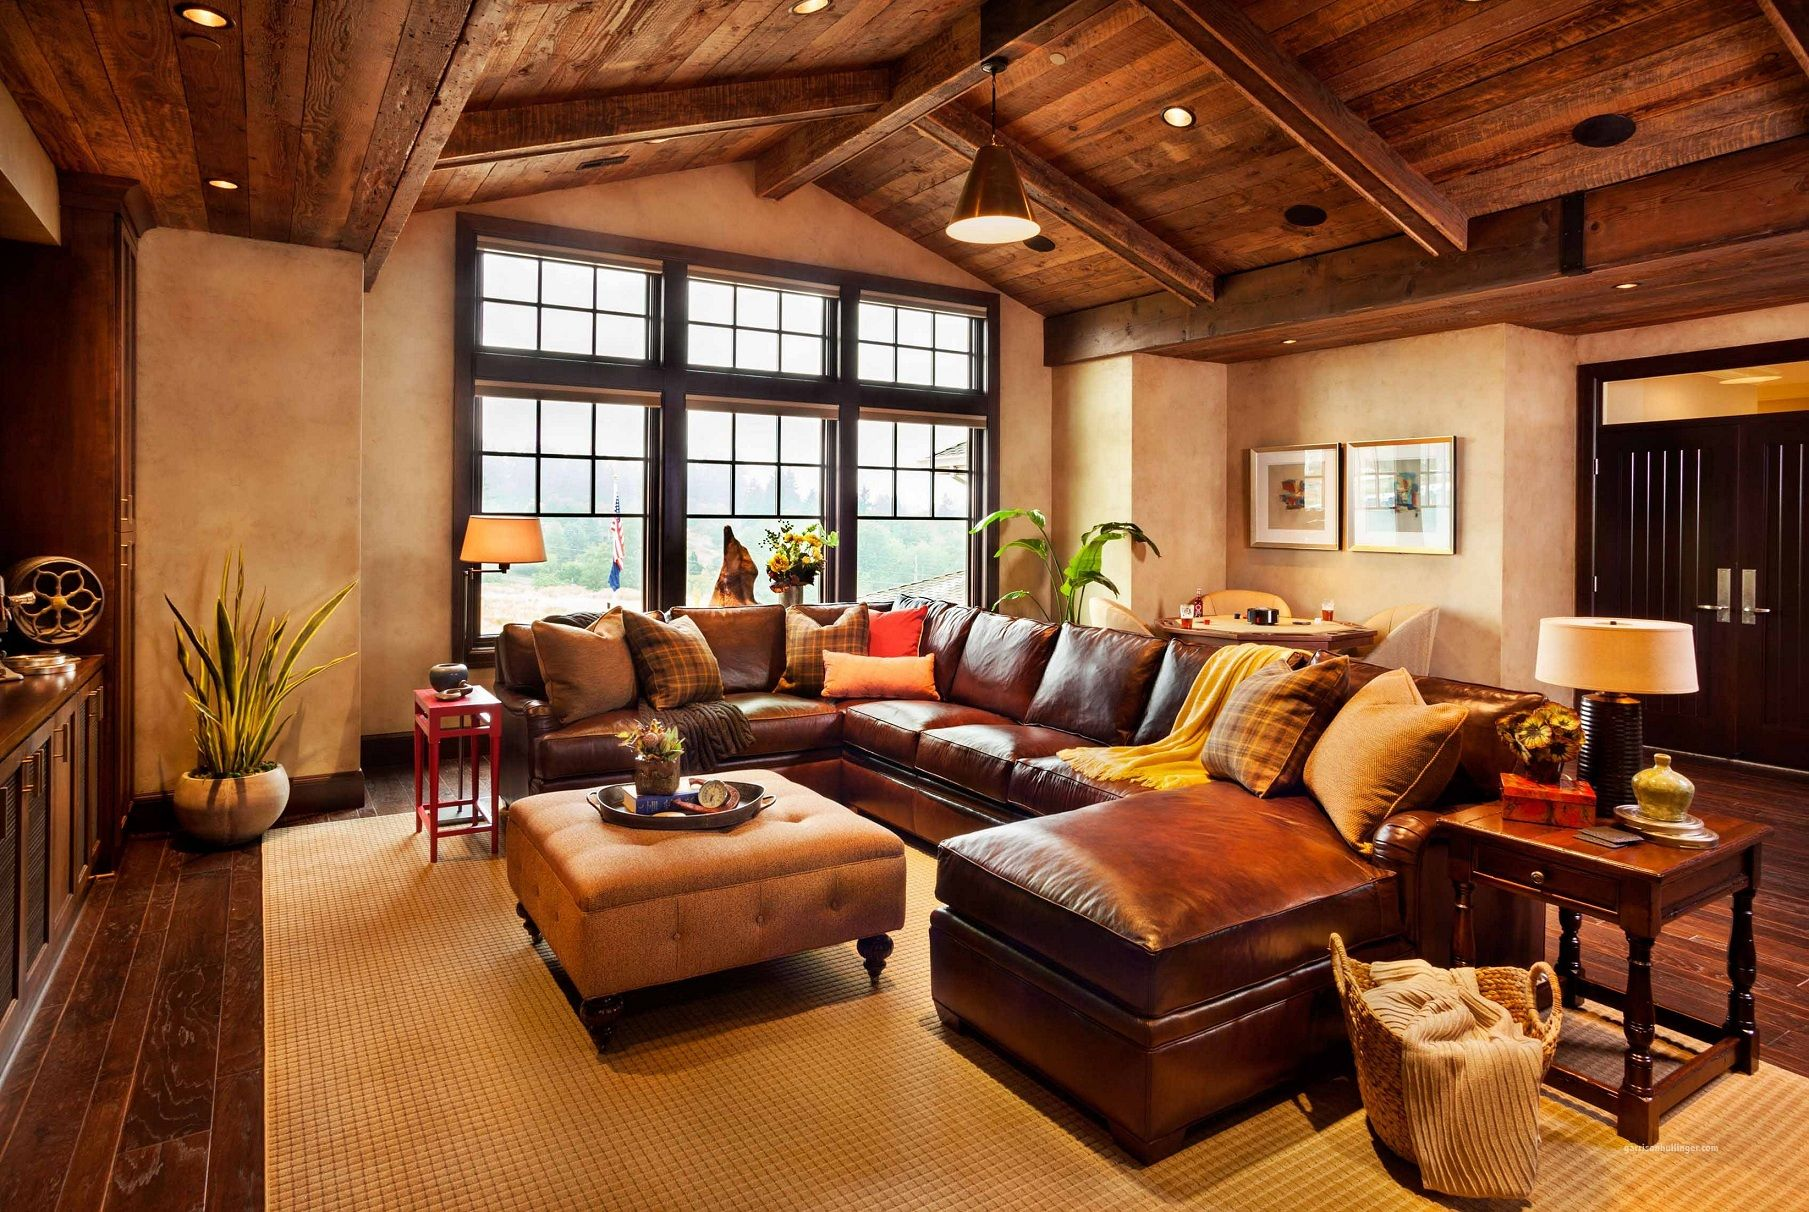 Rustic living room ideas for interior decoration of your home ...